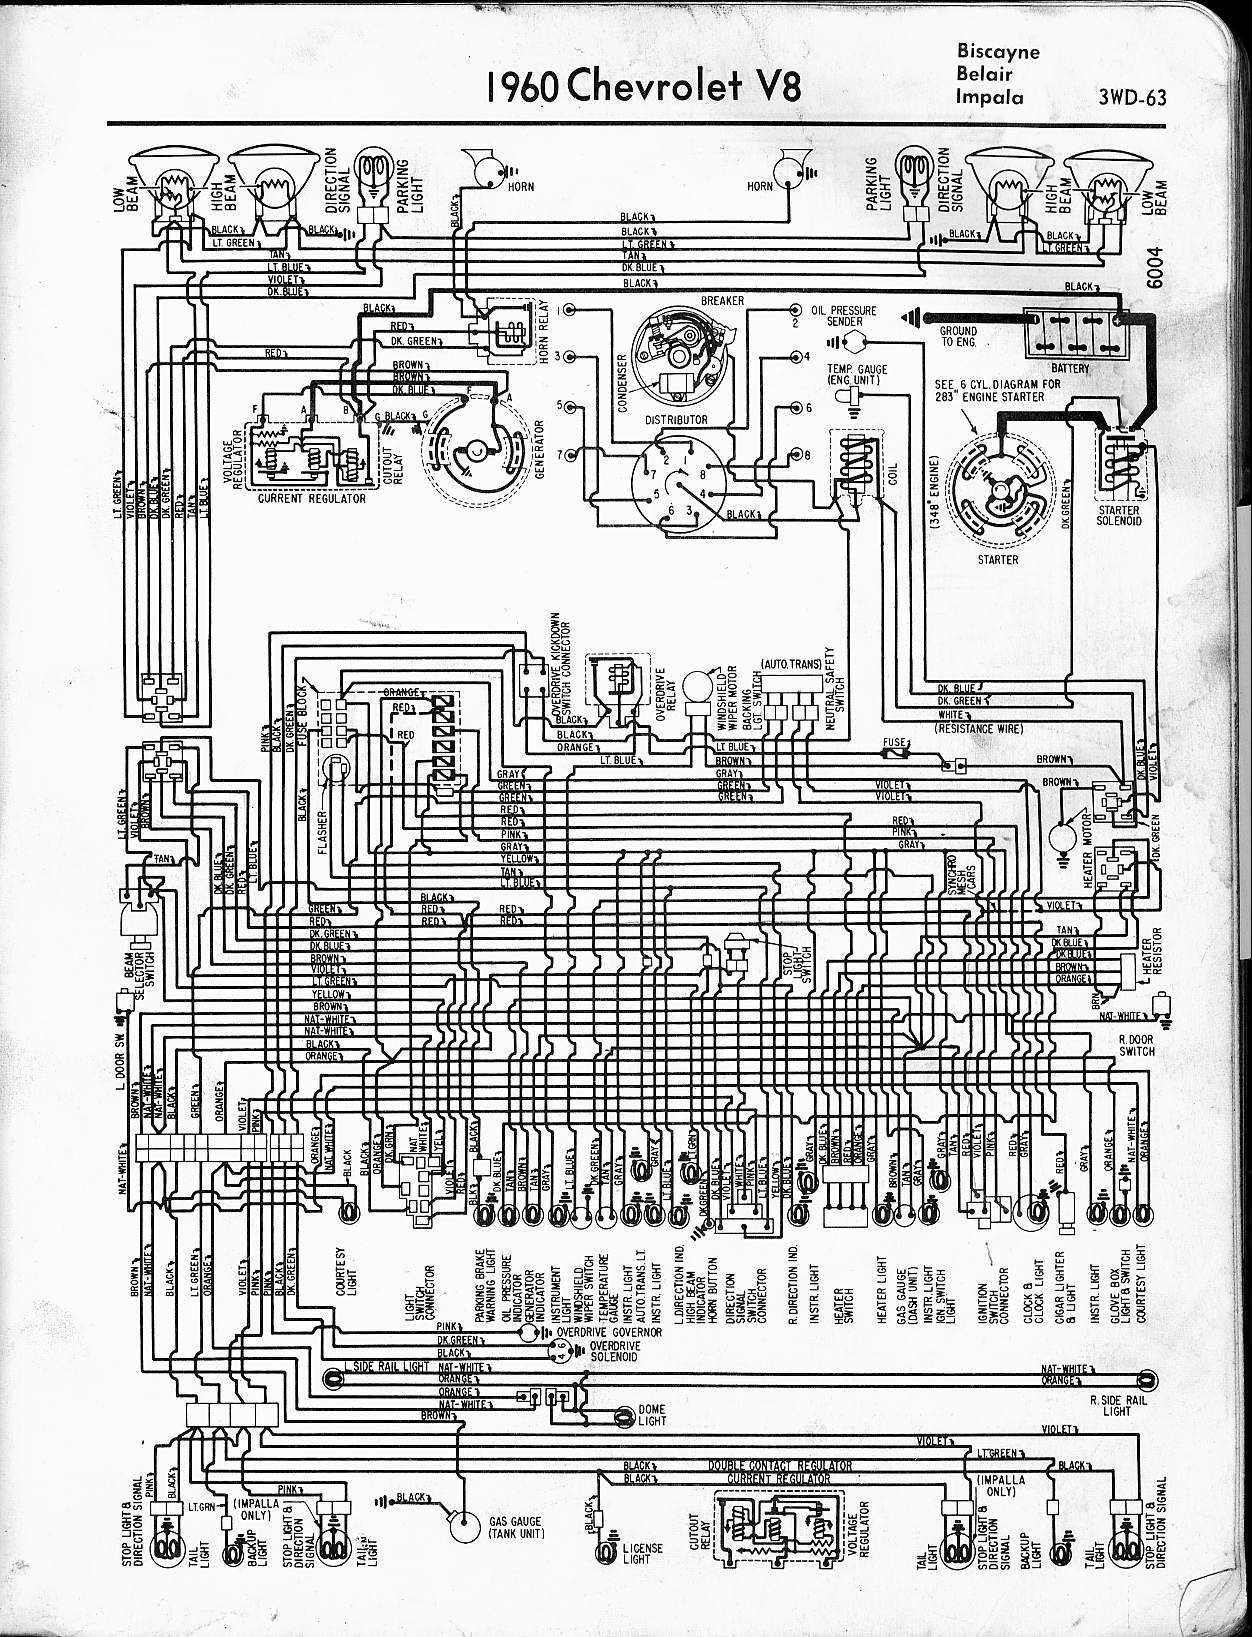 2005 chevy impala wiring diagram Download-1960 V8 Biscayne Belair Impala 6-t